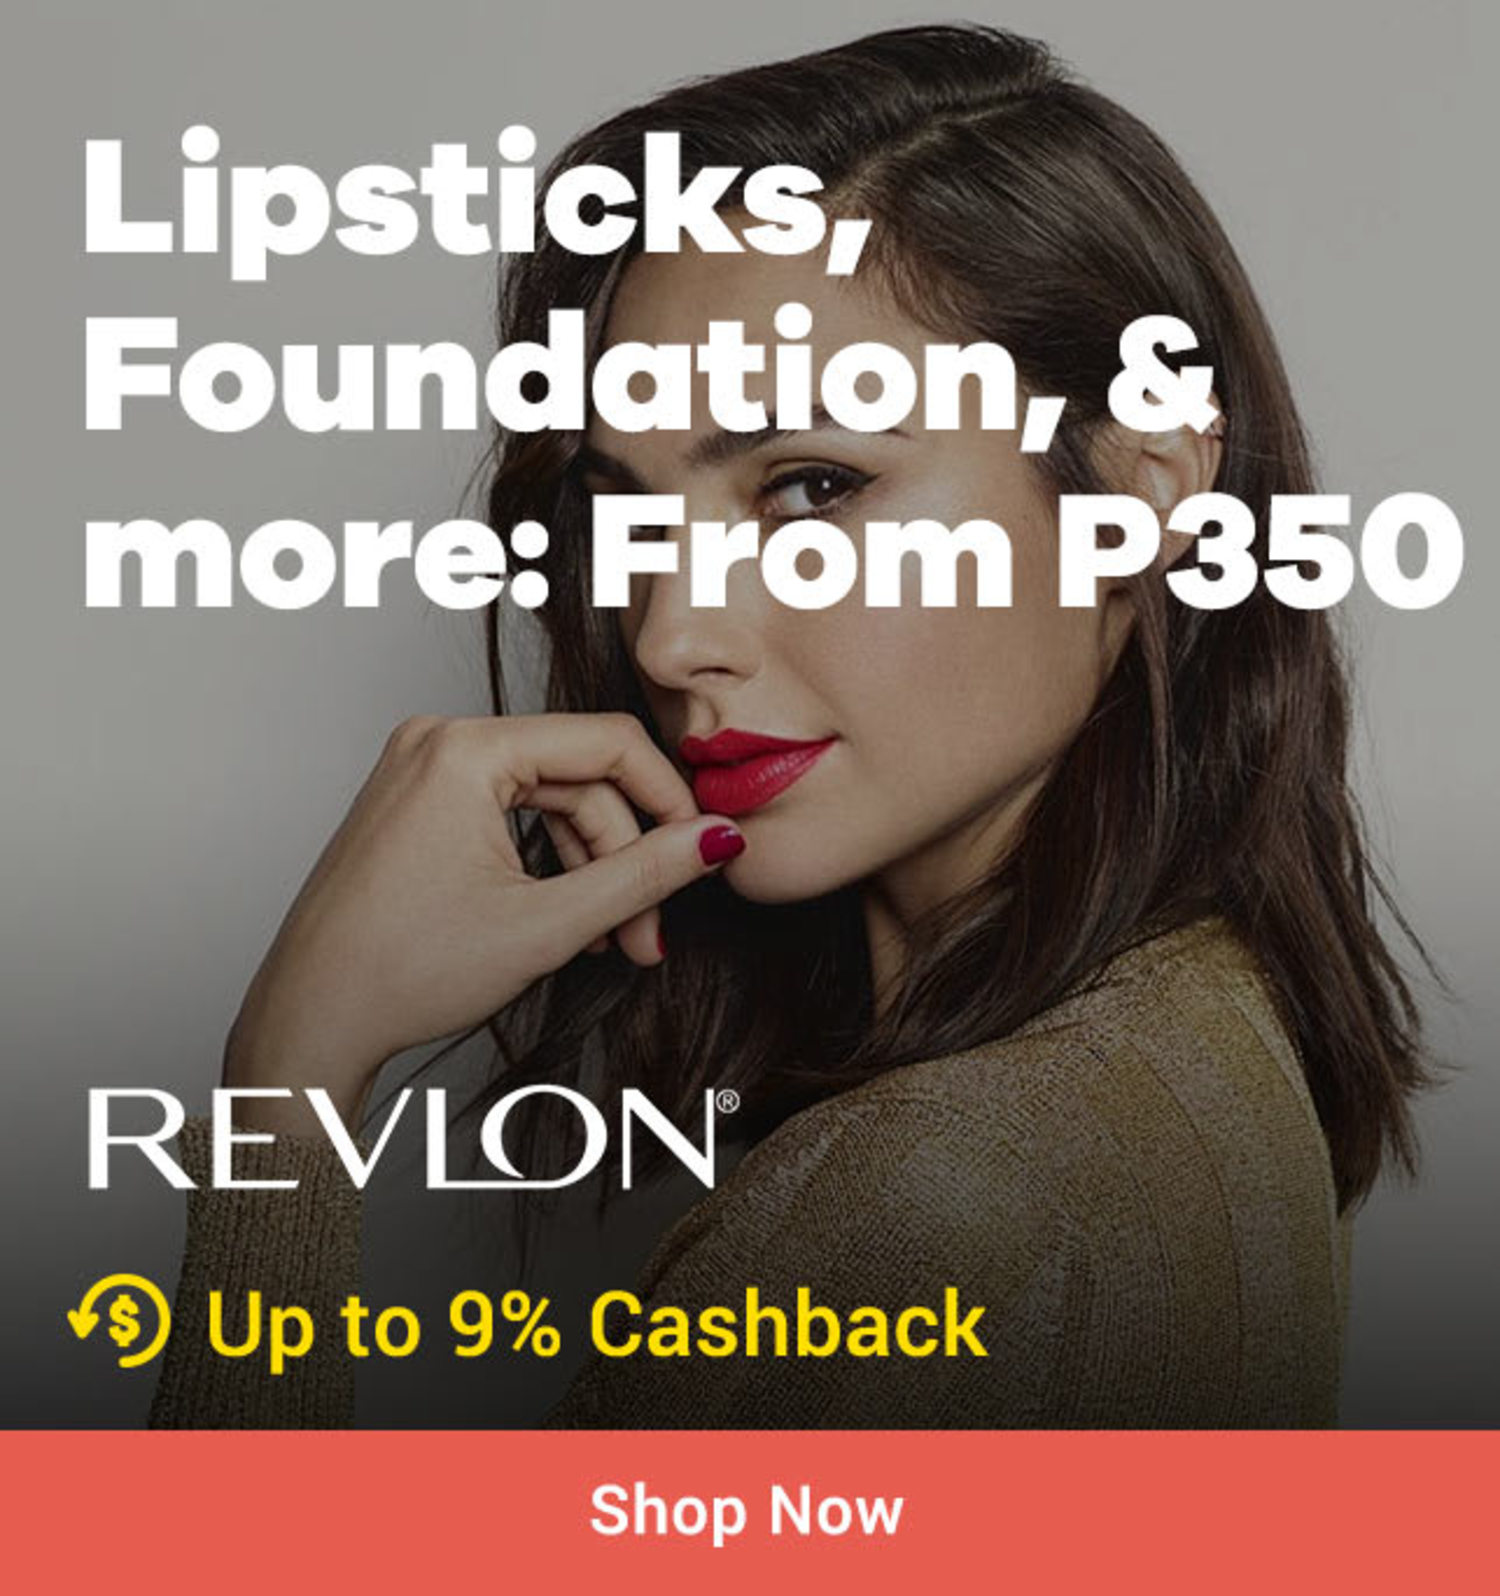 Revlon: Lipsticks, Foundation & more: From P350